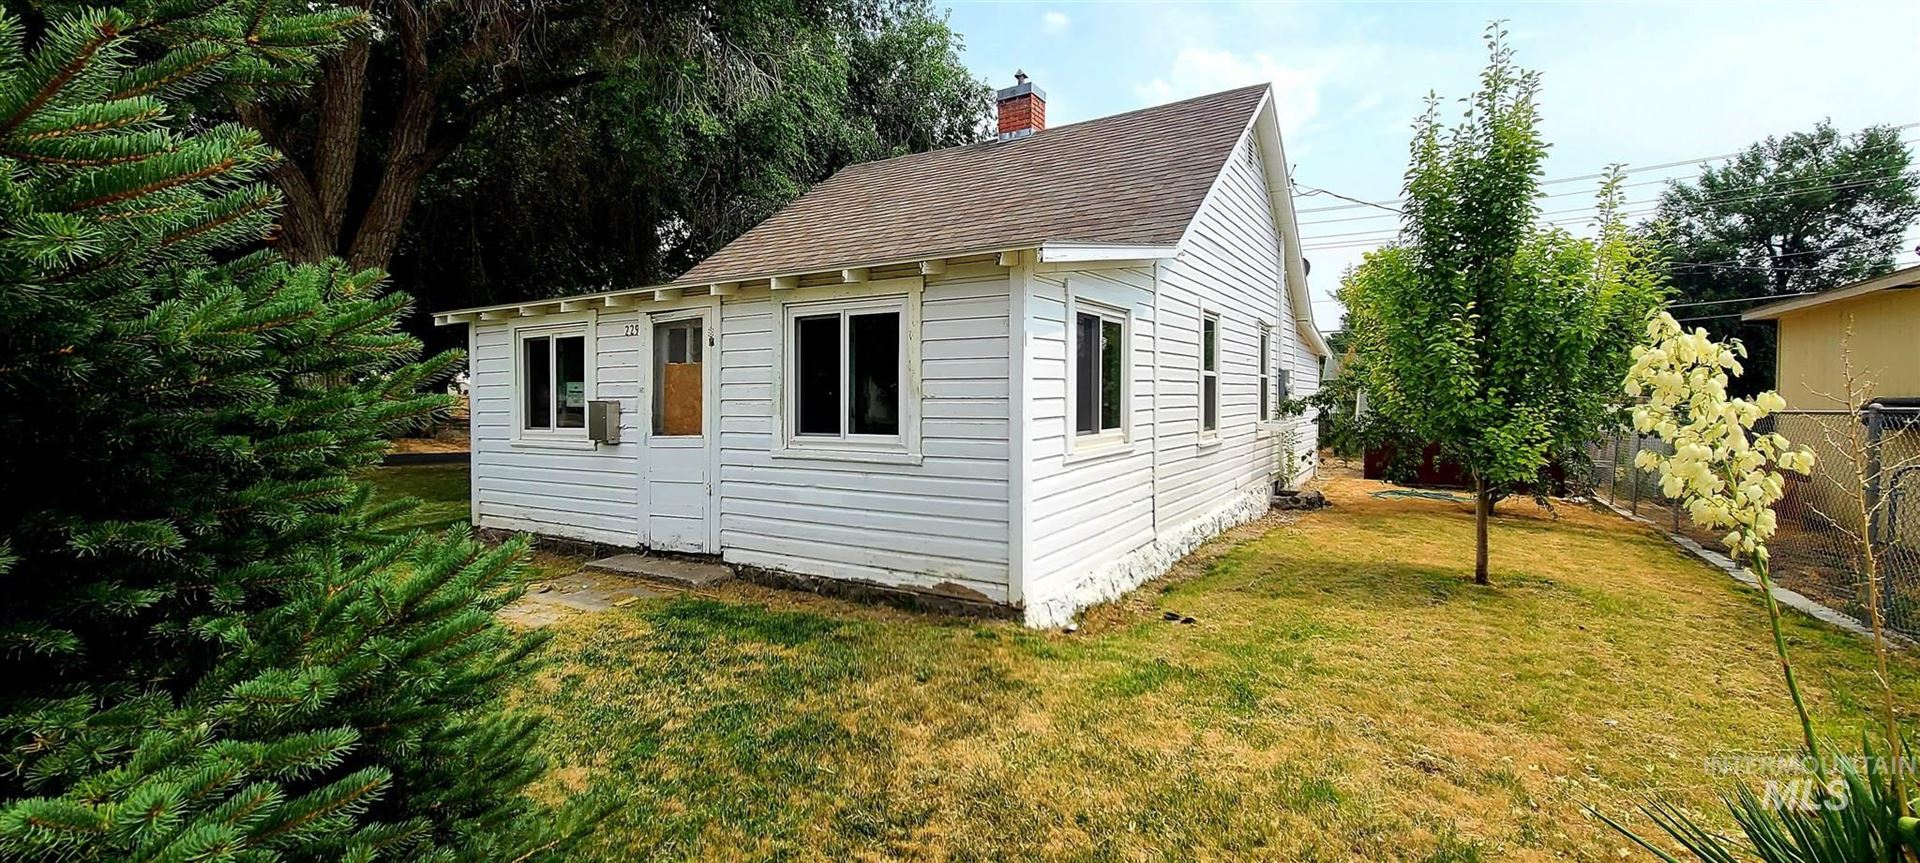 Photo of 229 E Ave F, Jerome, ID 83338 (MLS # 98811356)